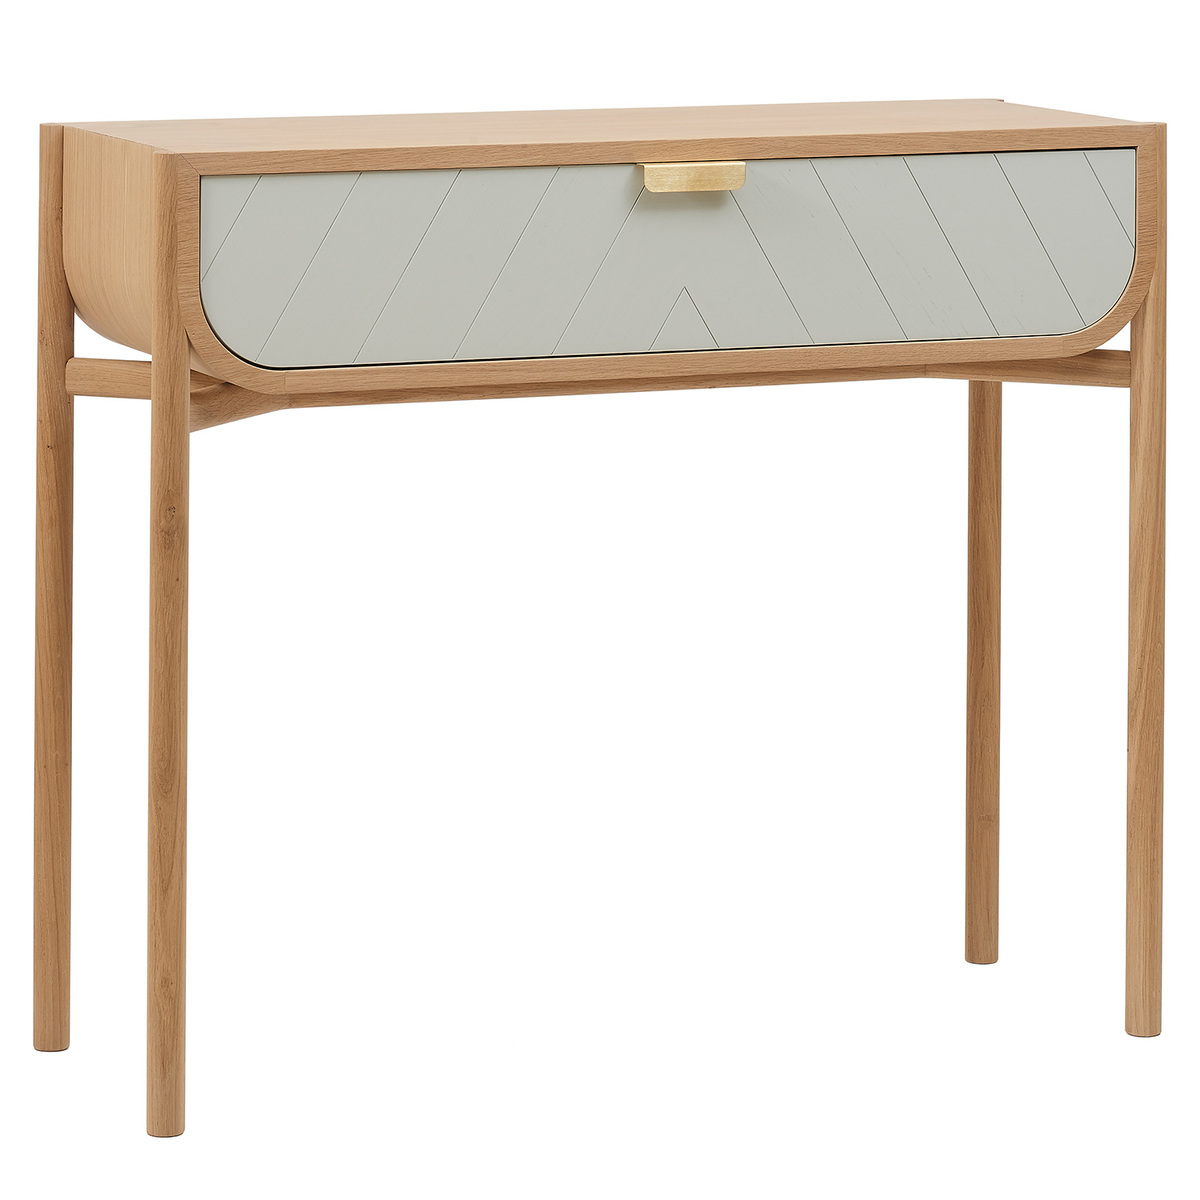 Astonishing Harto Marius Console Table Oak Light Grey Finnish Gmtry Best Dining Table And Chair Ideas Images Gmtryco